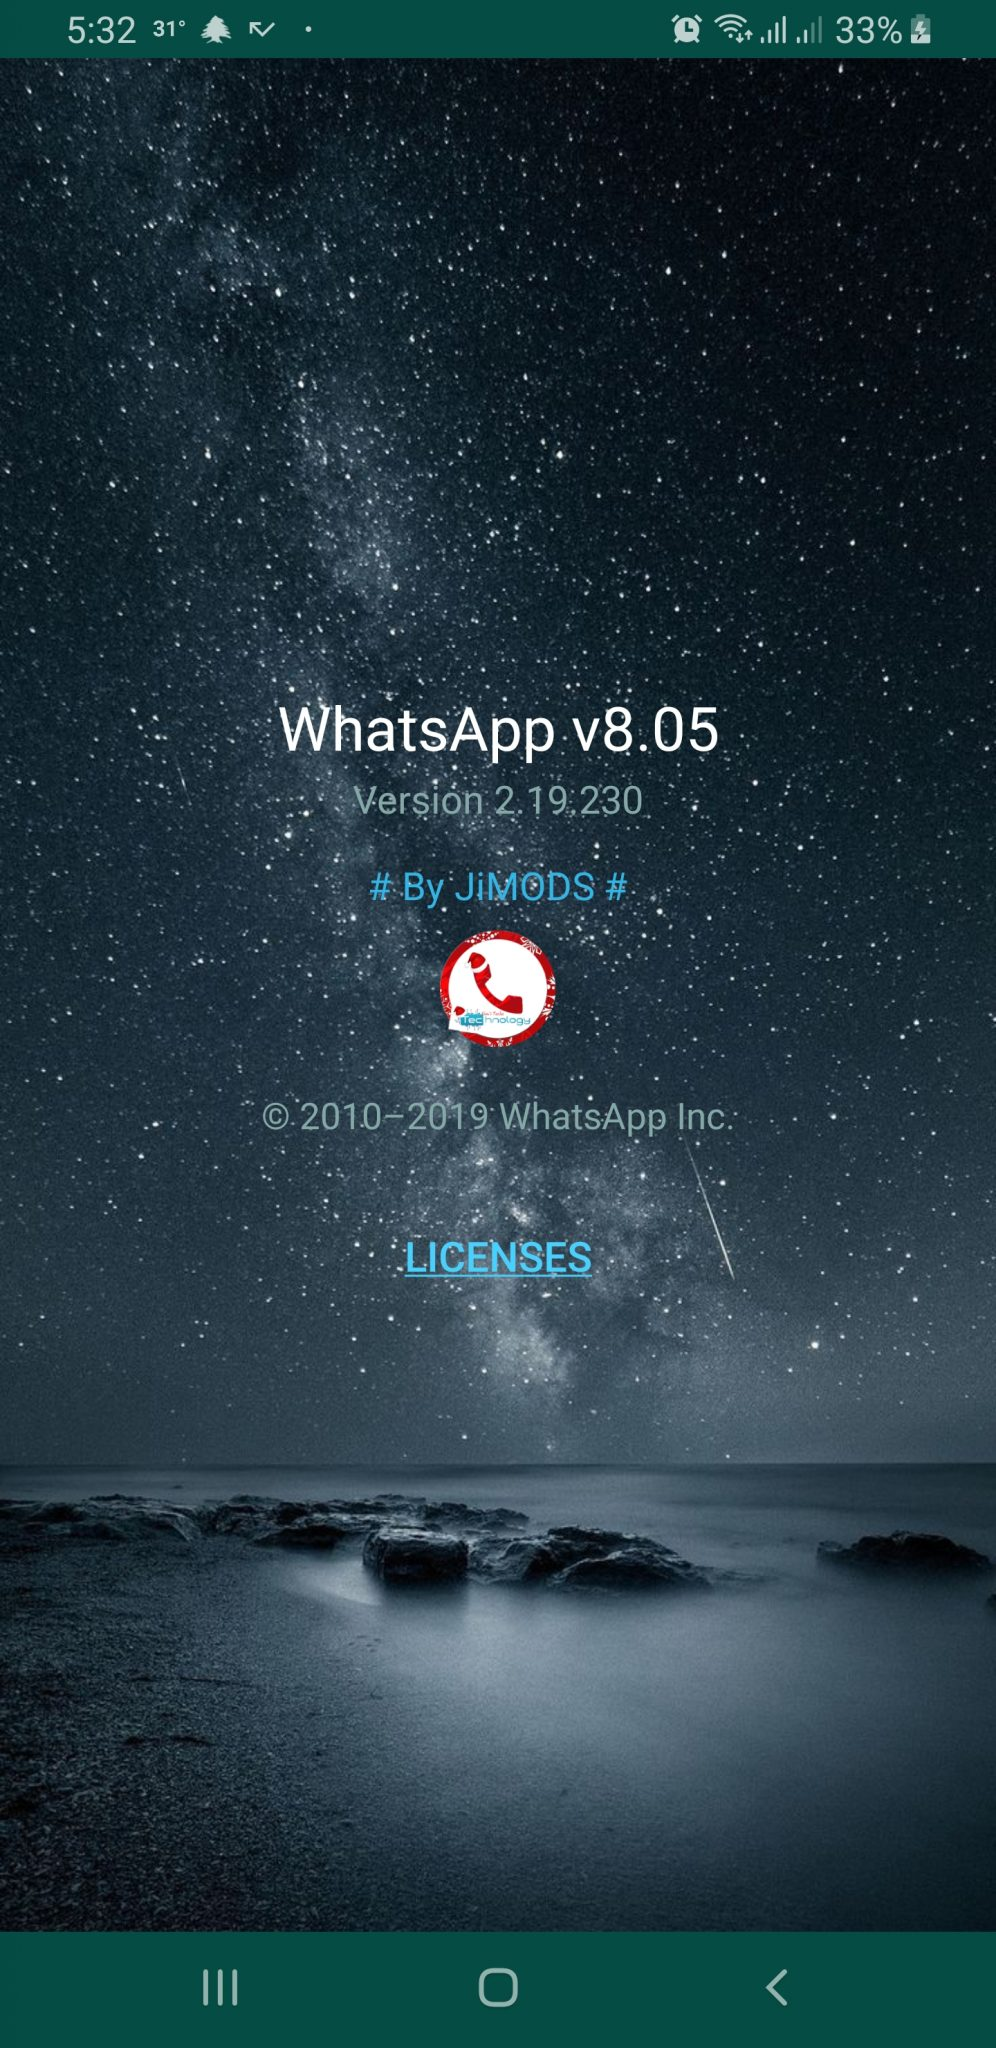 WhatsApp Plus JiMODs v8.05 Jimtechs Editions